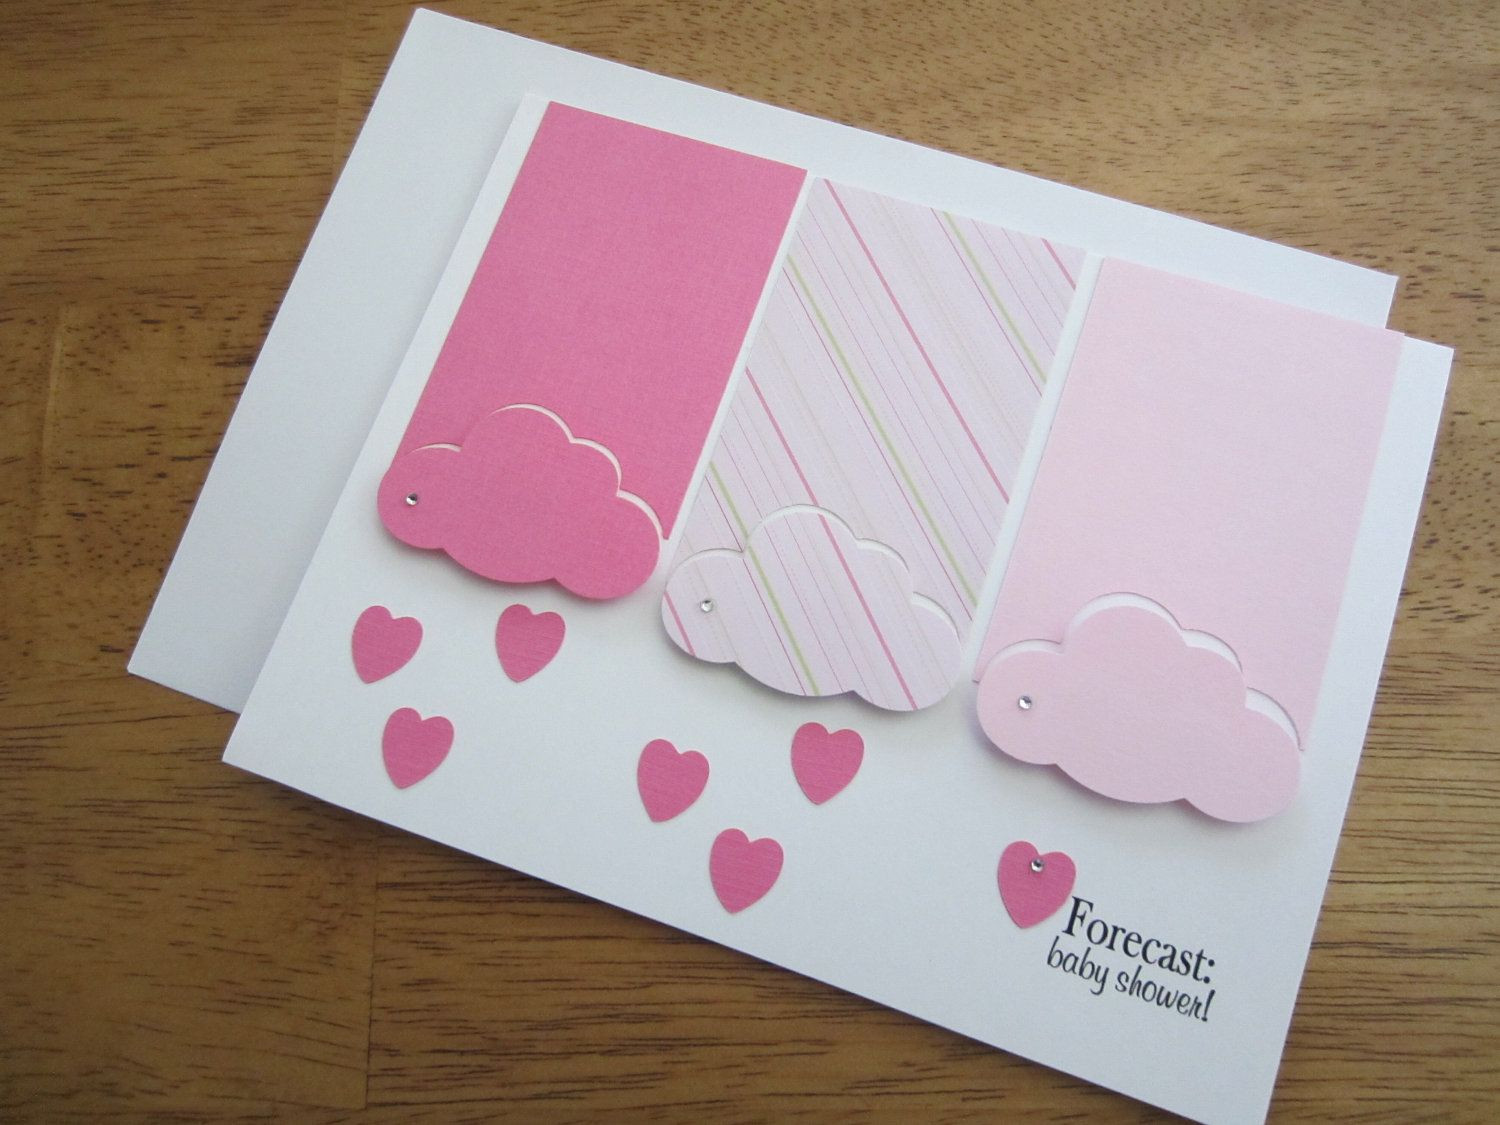 Best ideas about DIY Baby Shower Card . Save or Pin DIY Baby Shower Invitations Ideas to Make at Home Now.